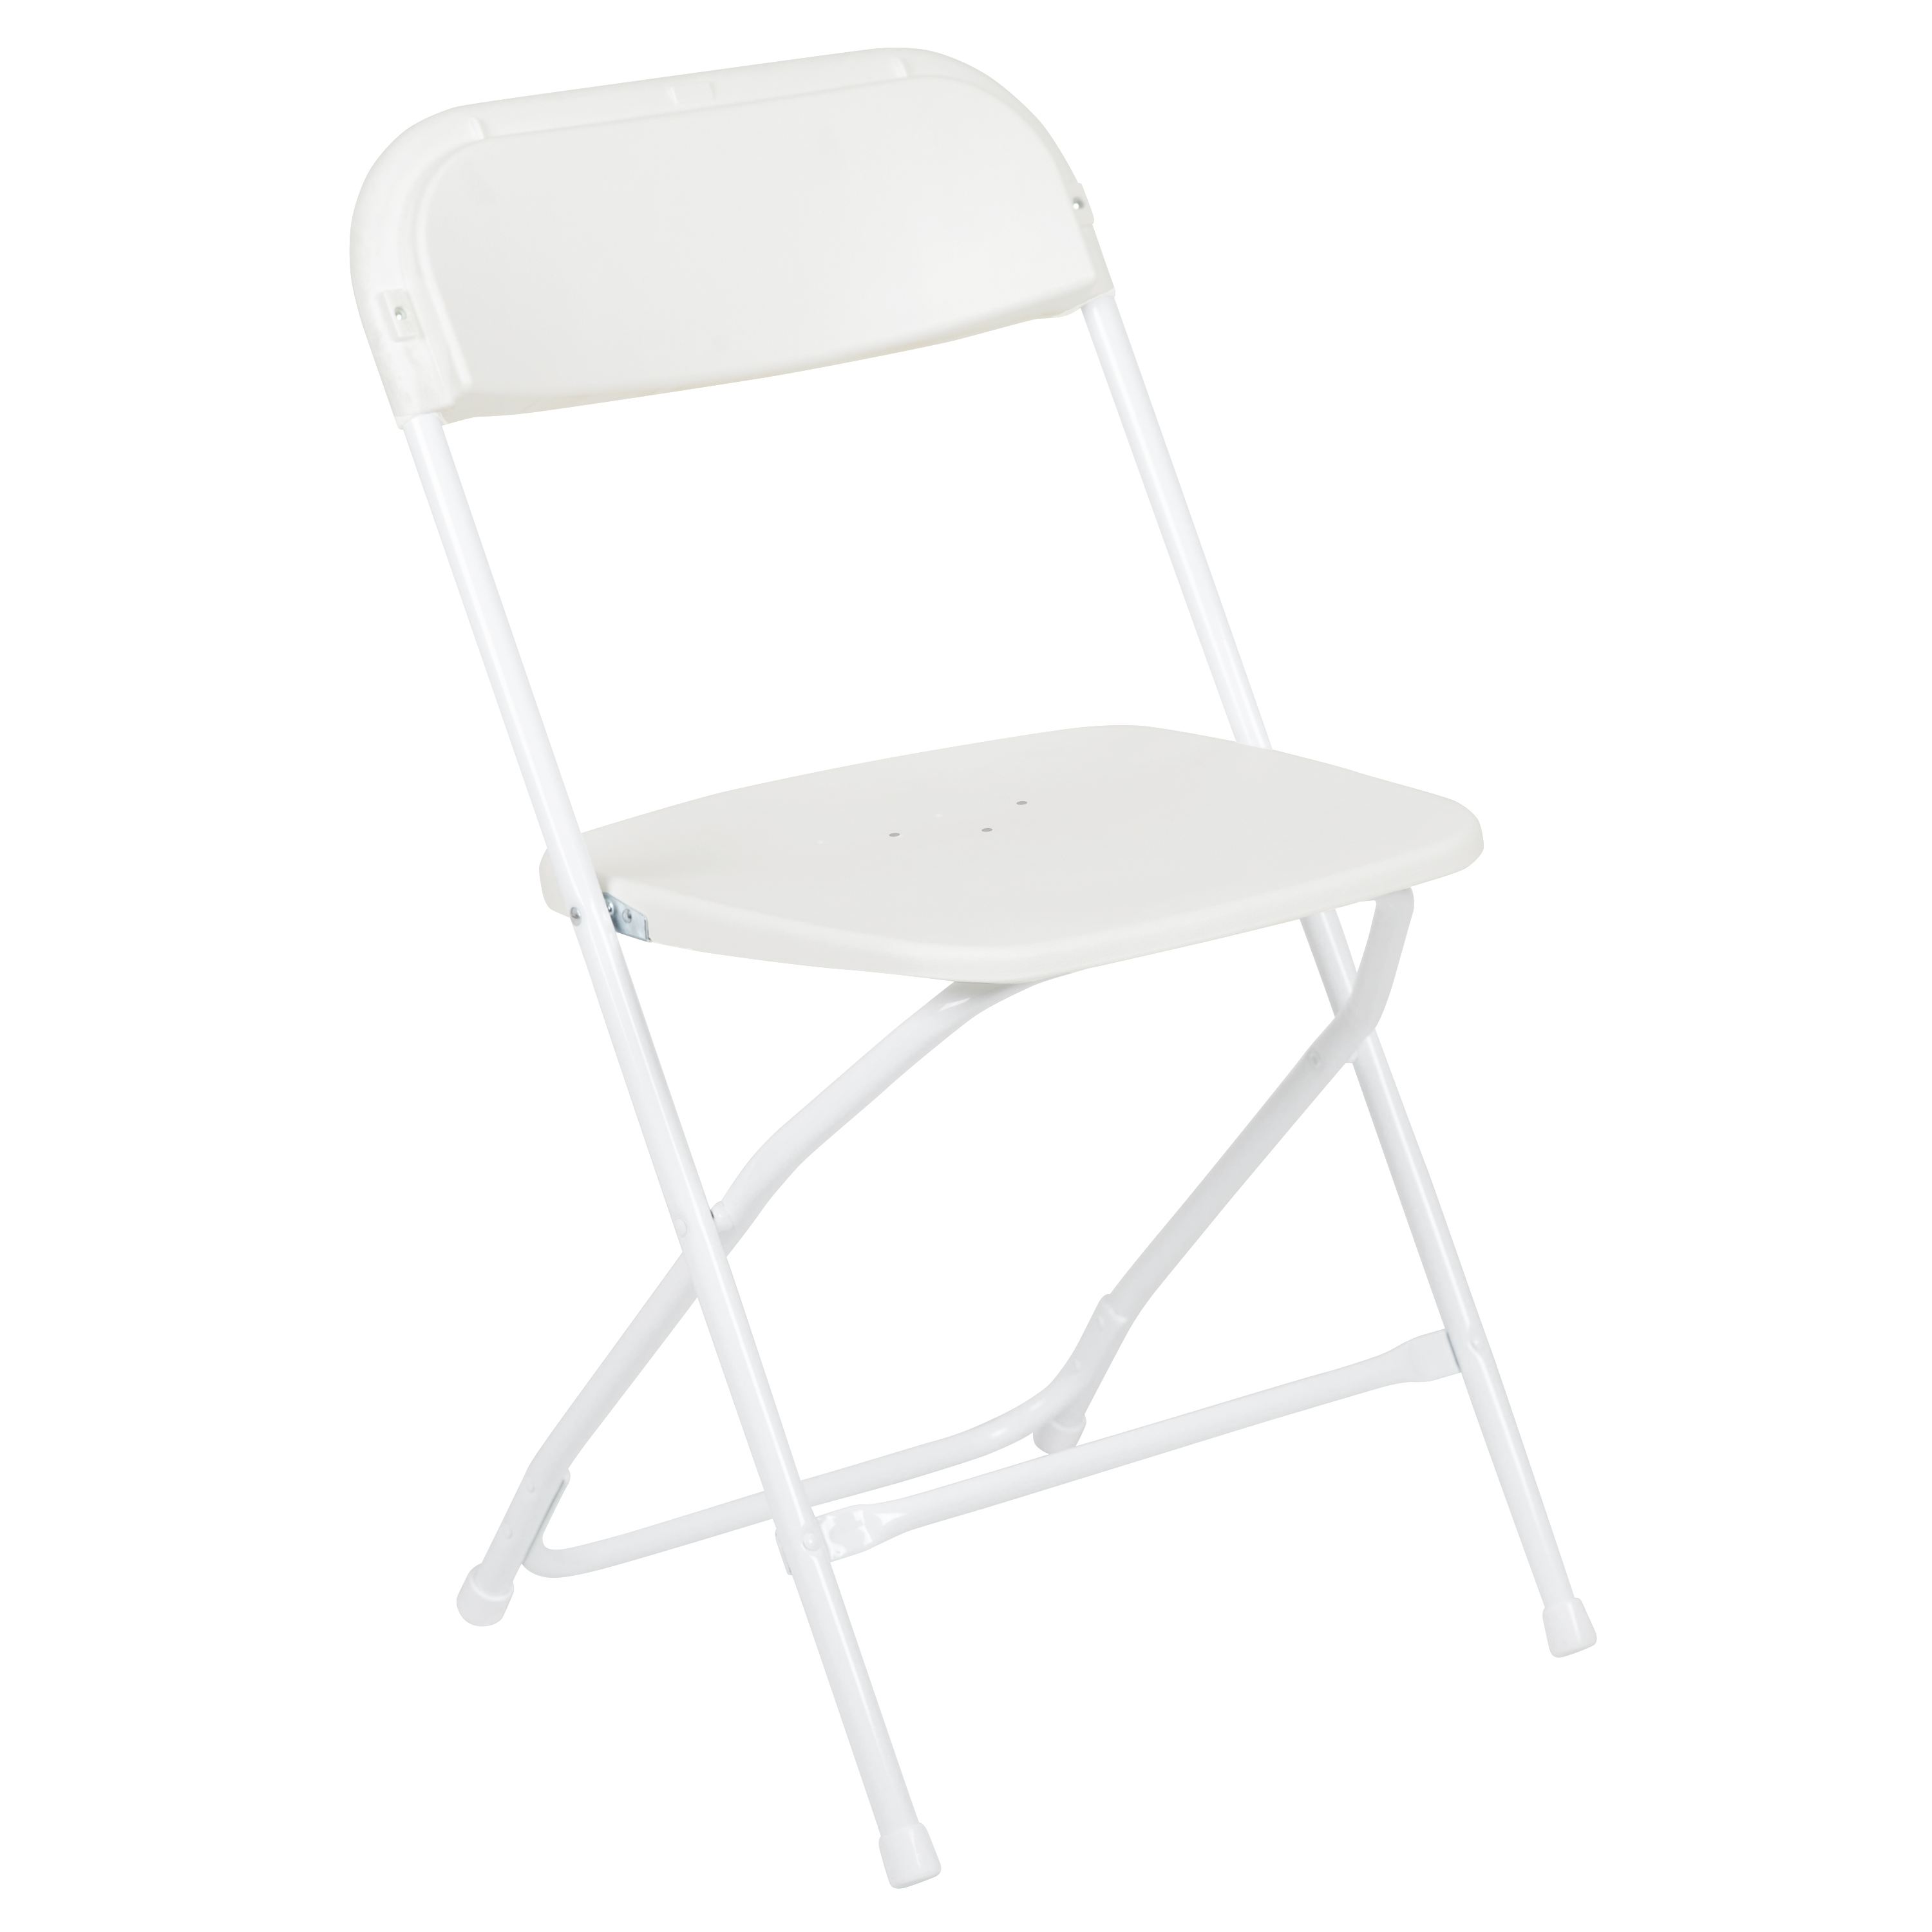 HERCULES Series 650 lb. Capacity Premium White Plastic Folding Chair